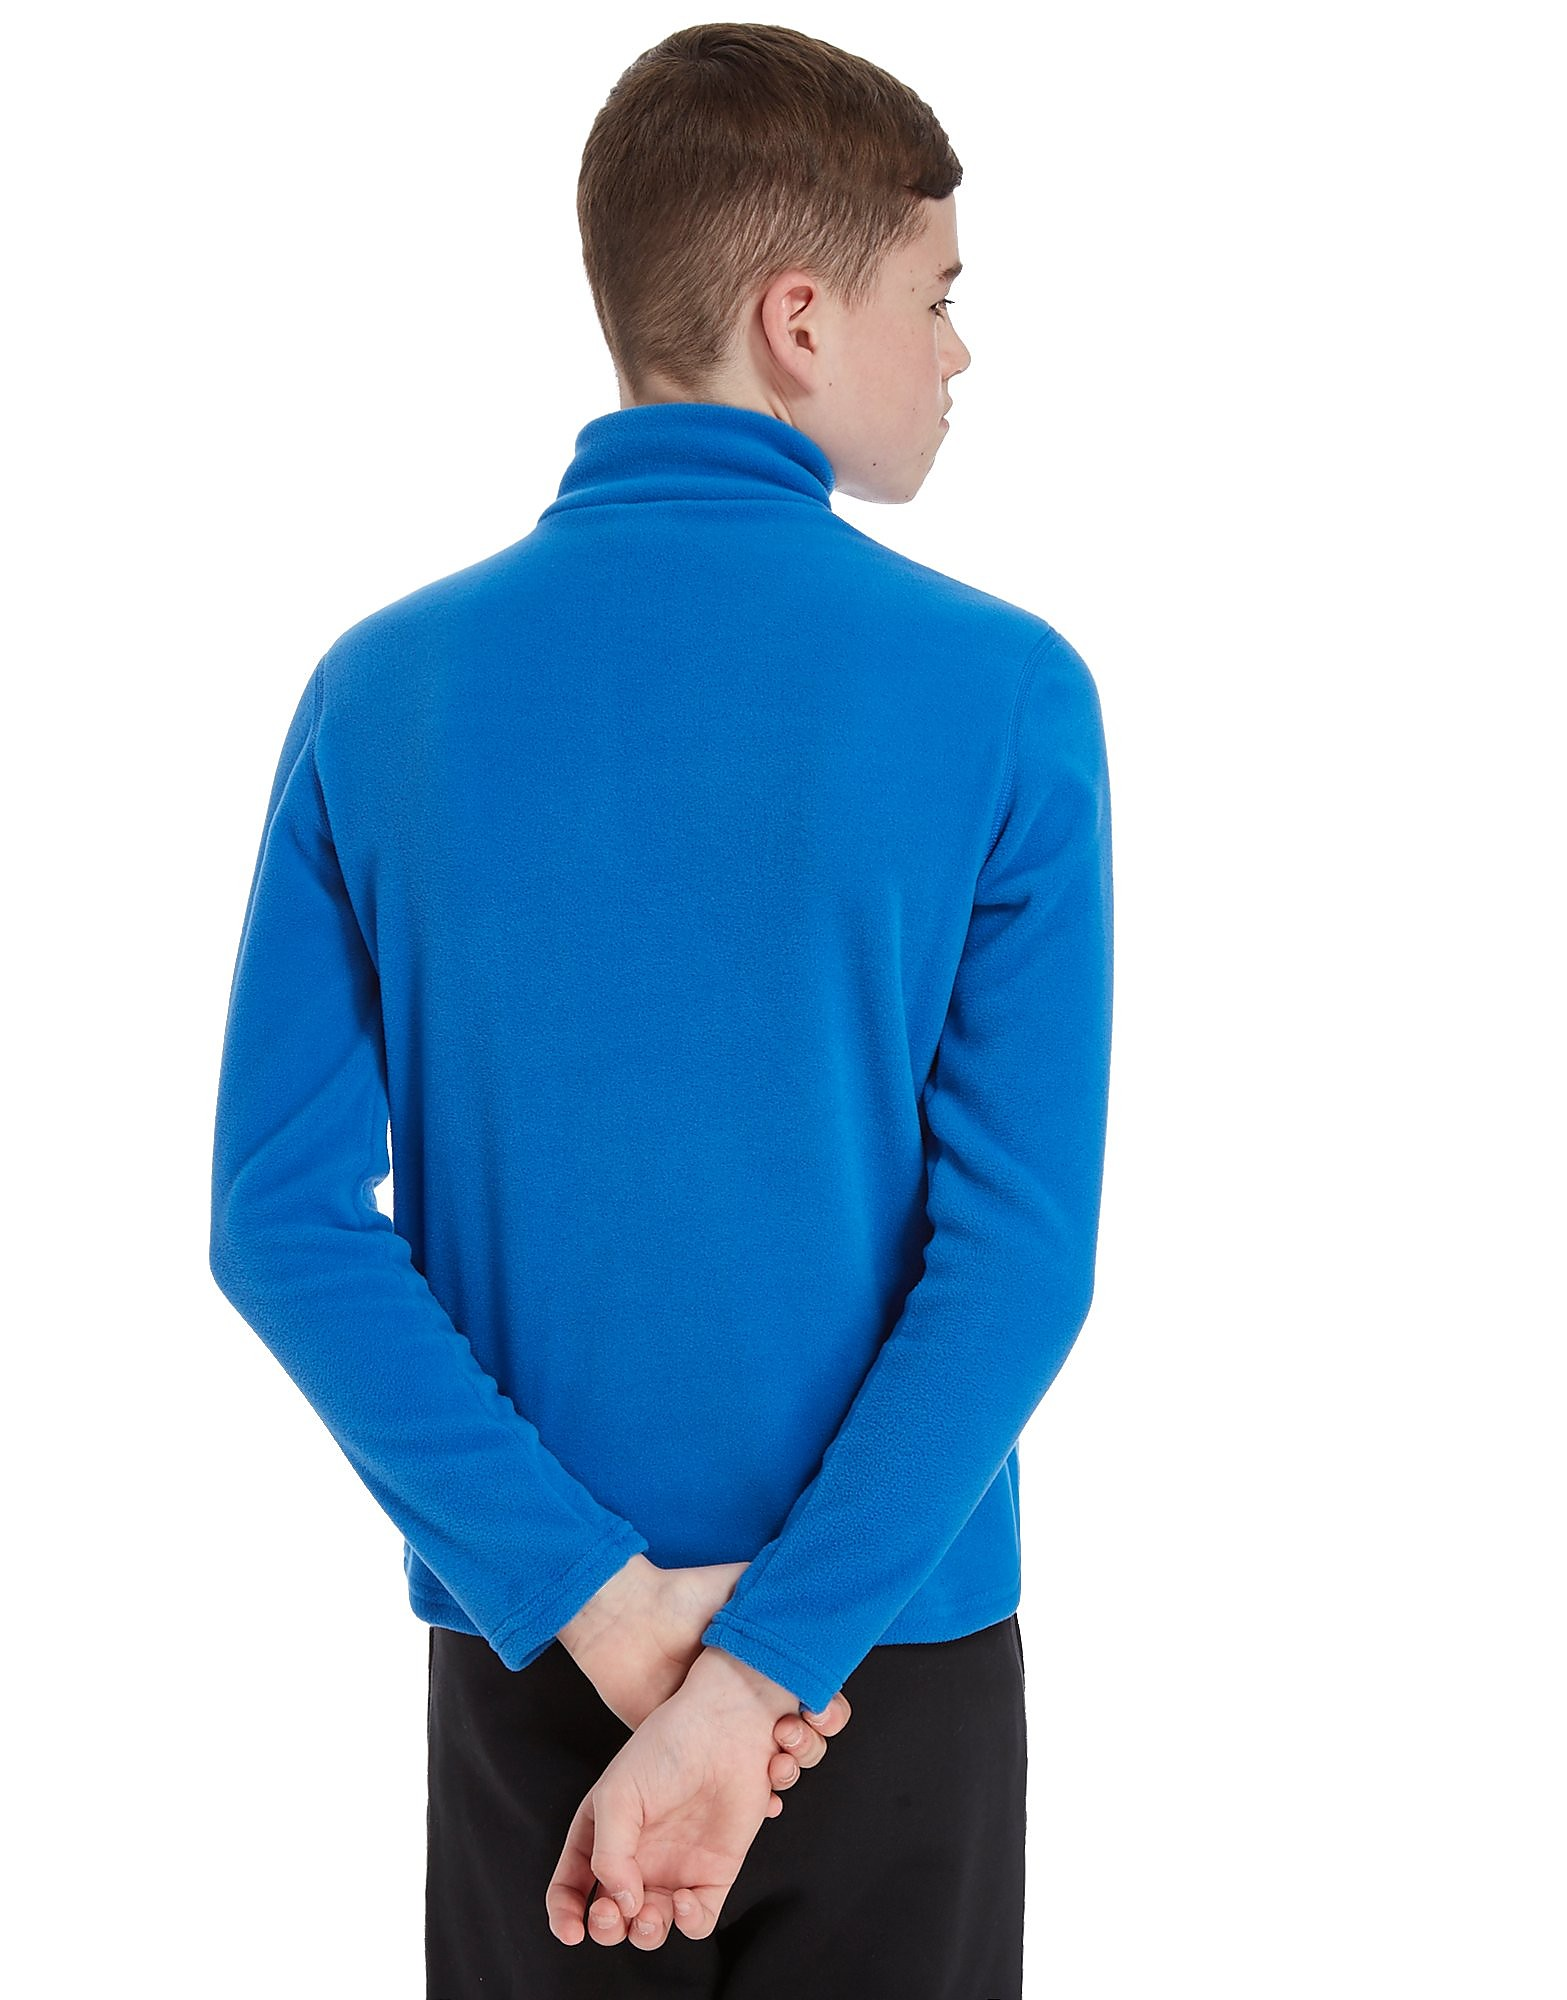 The North Face Glacier 1/4 Zip Top Junior